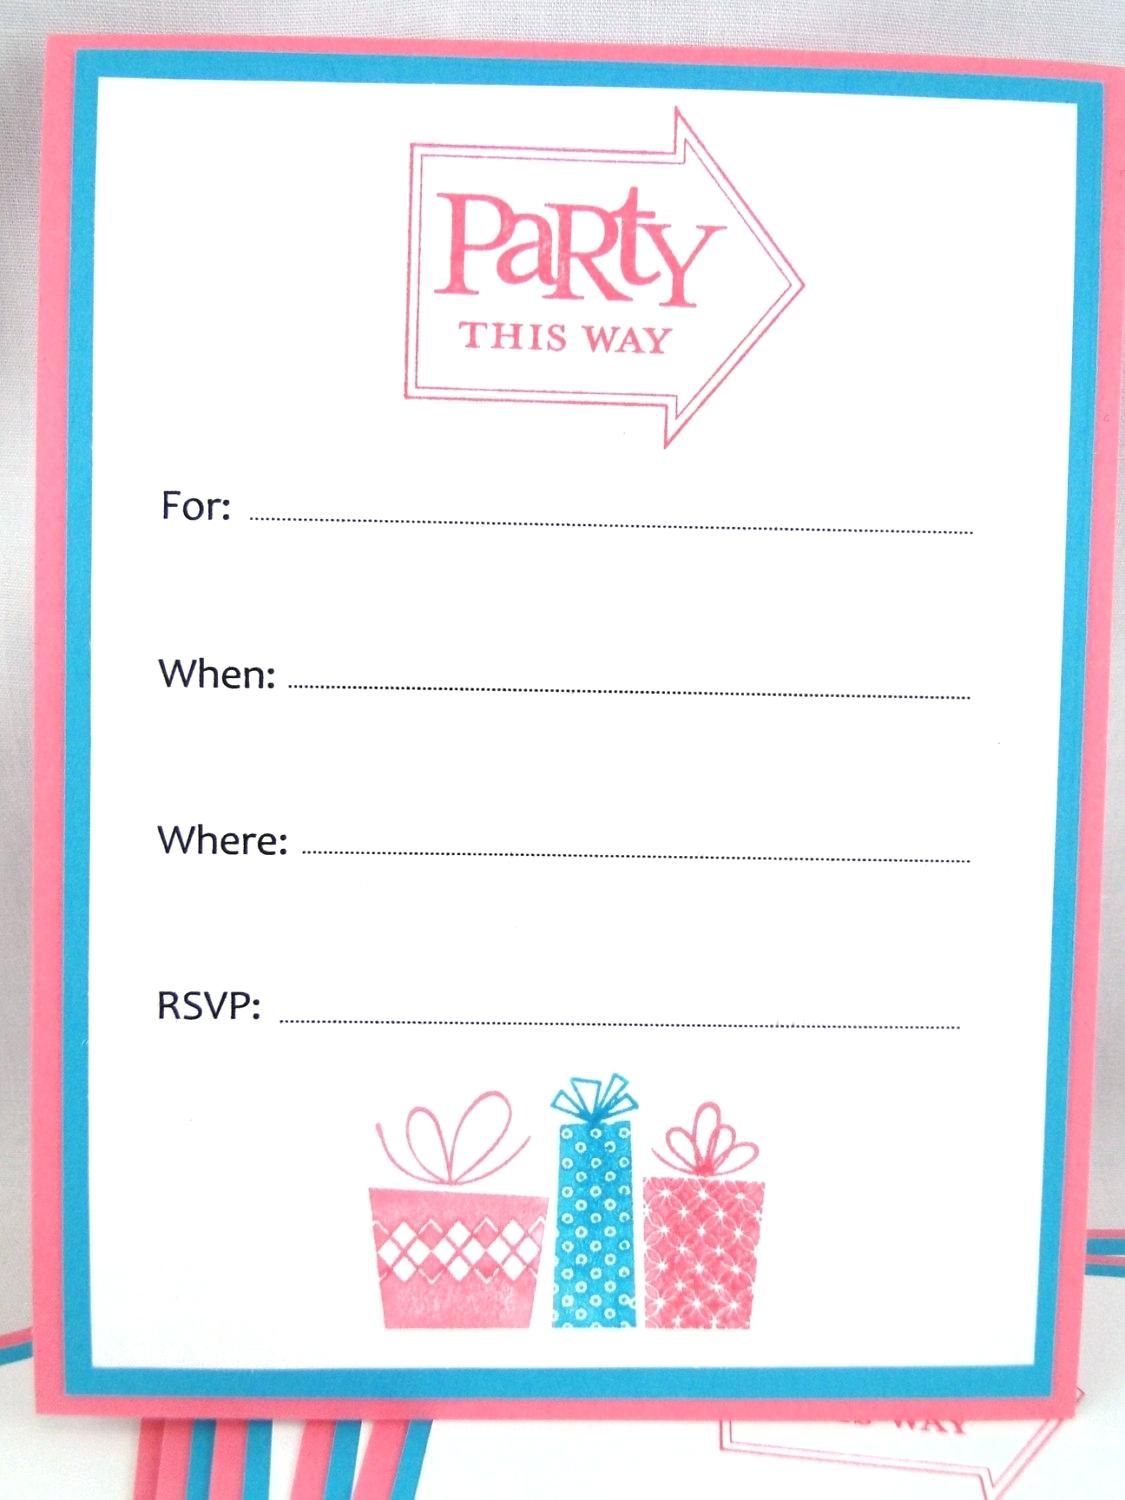 teenage birthday invitation templates ; teenage-birthday-party-invitation-template-blank-affordable-templates